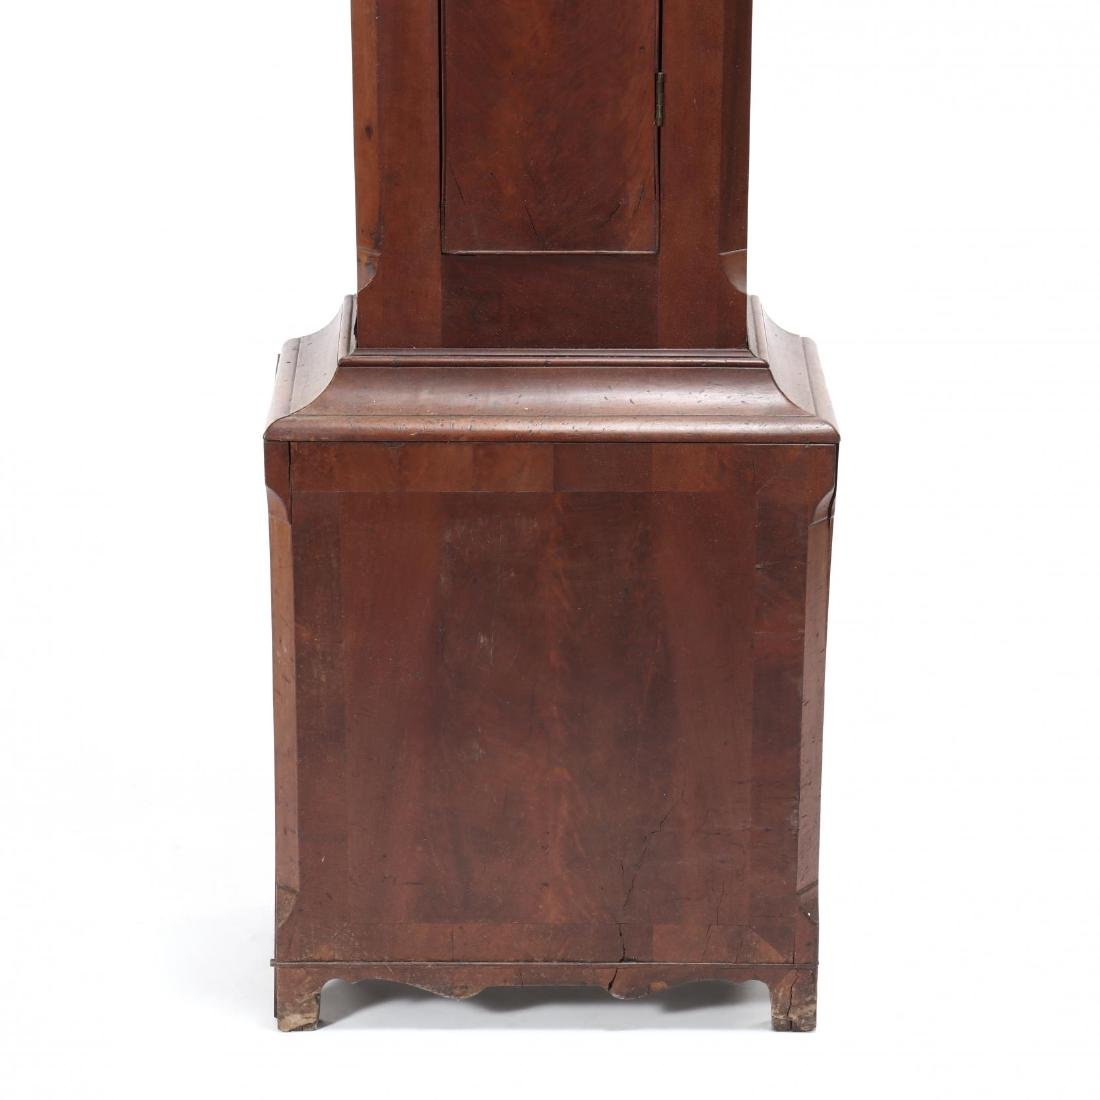 Southern Federal Tall Case Cherry Clock - 2